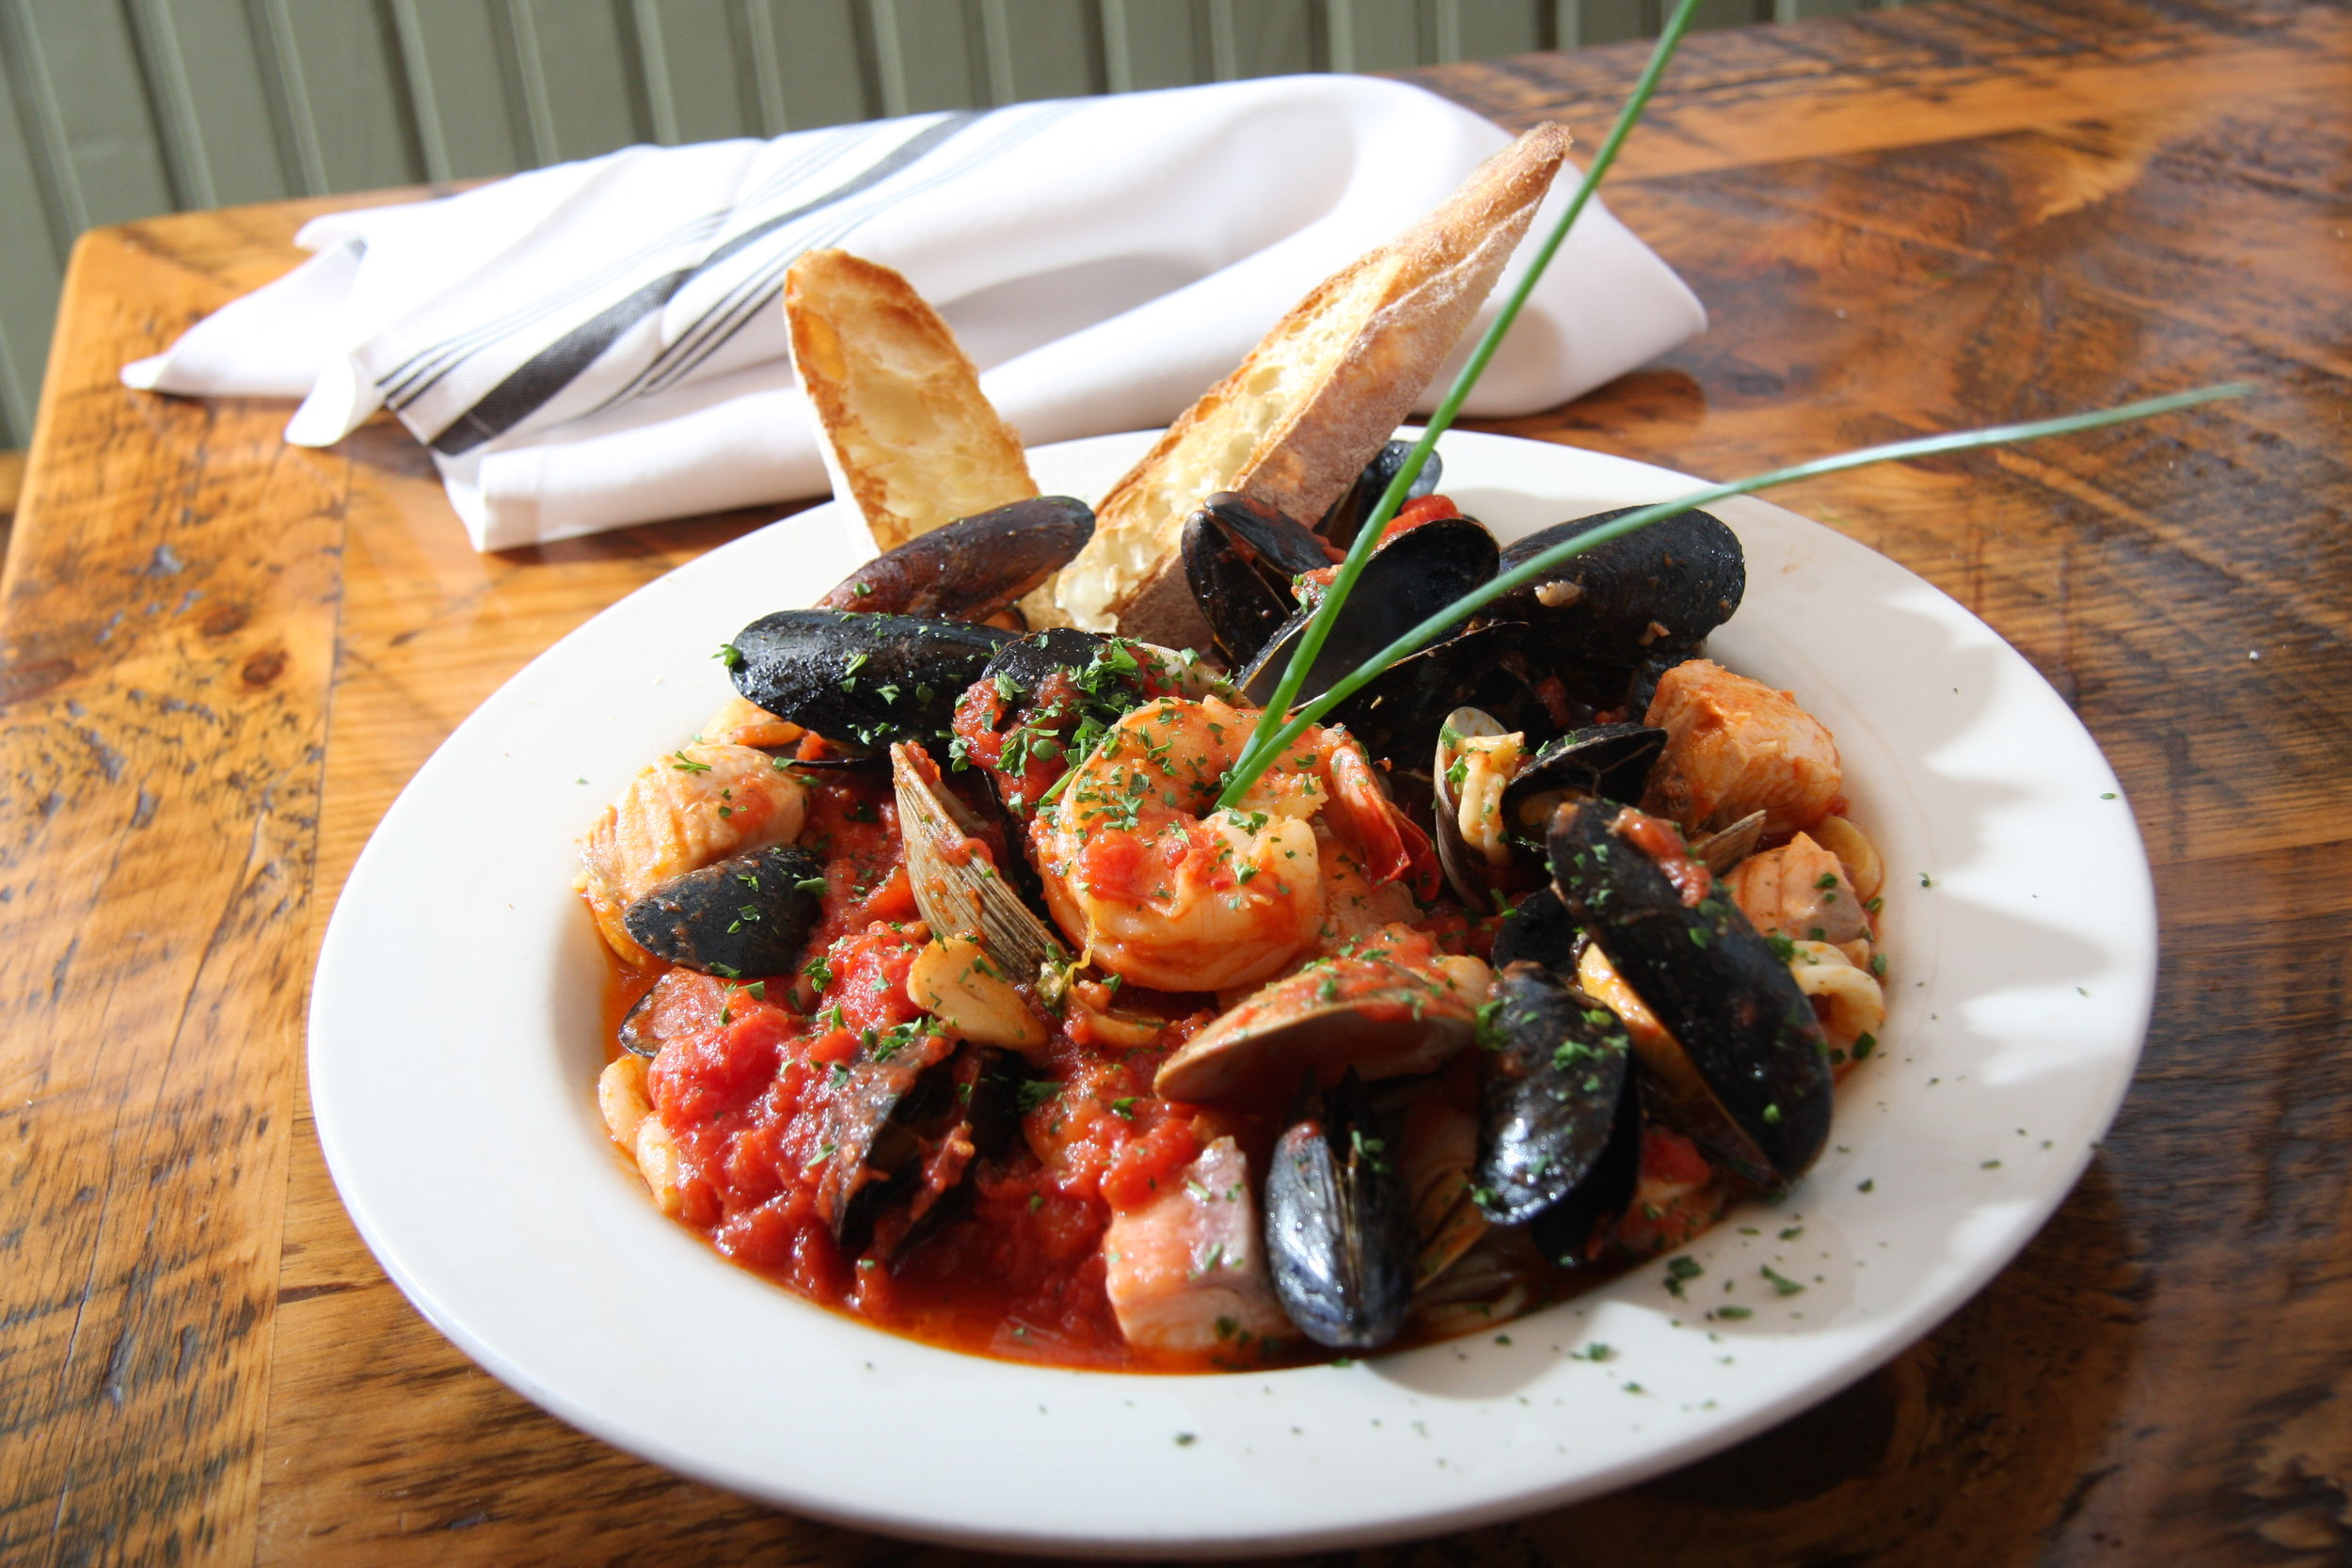 Don't feel like sharing? Our Wonderfully Wicked Seafood Lovers for Two entrée can be made to order for one!